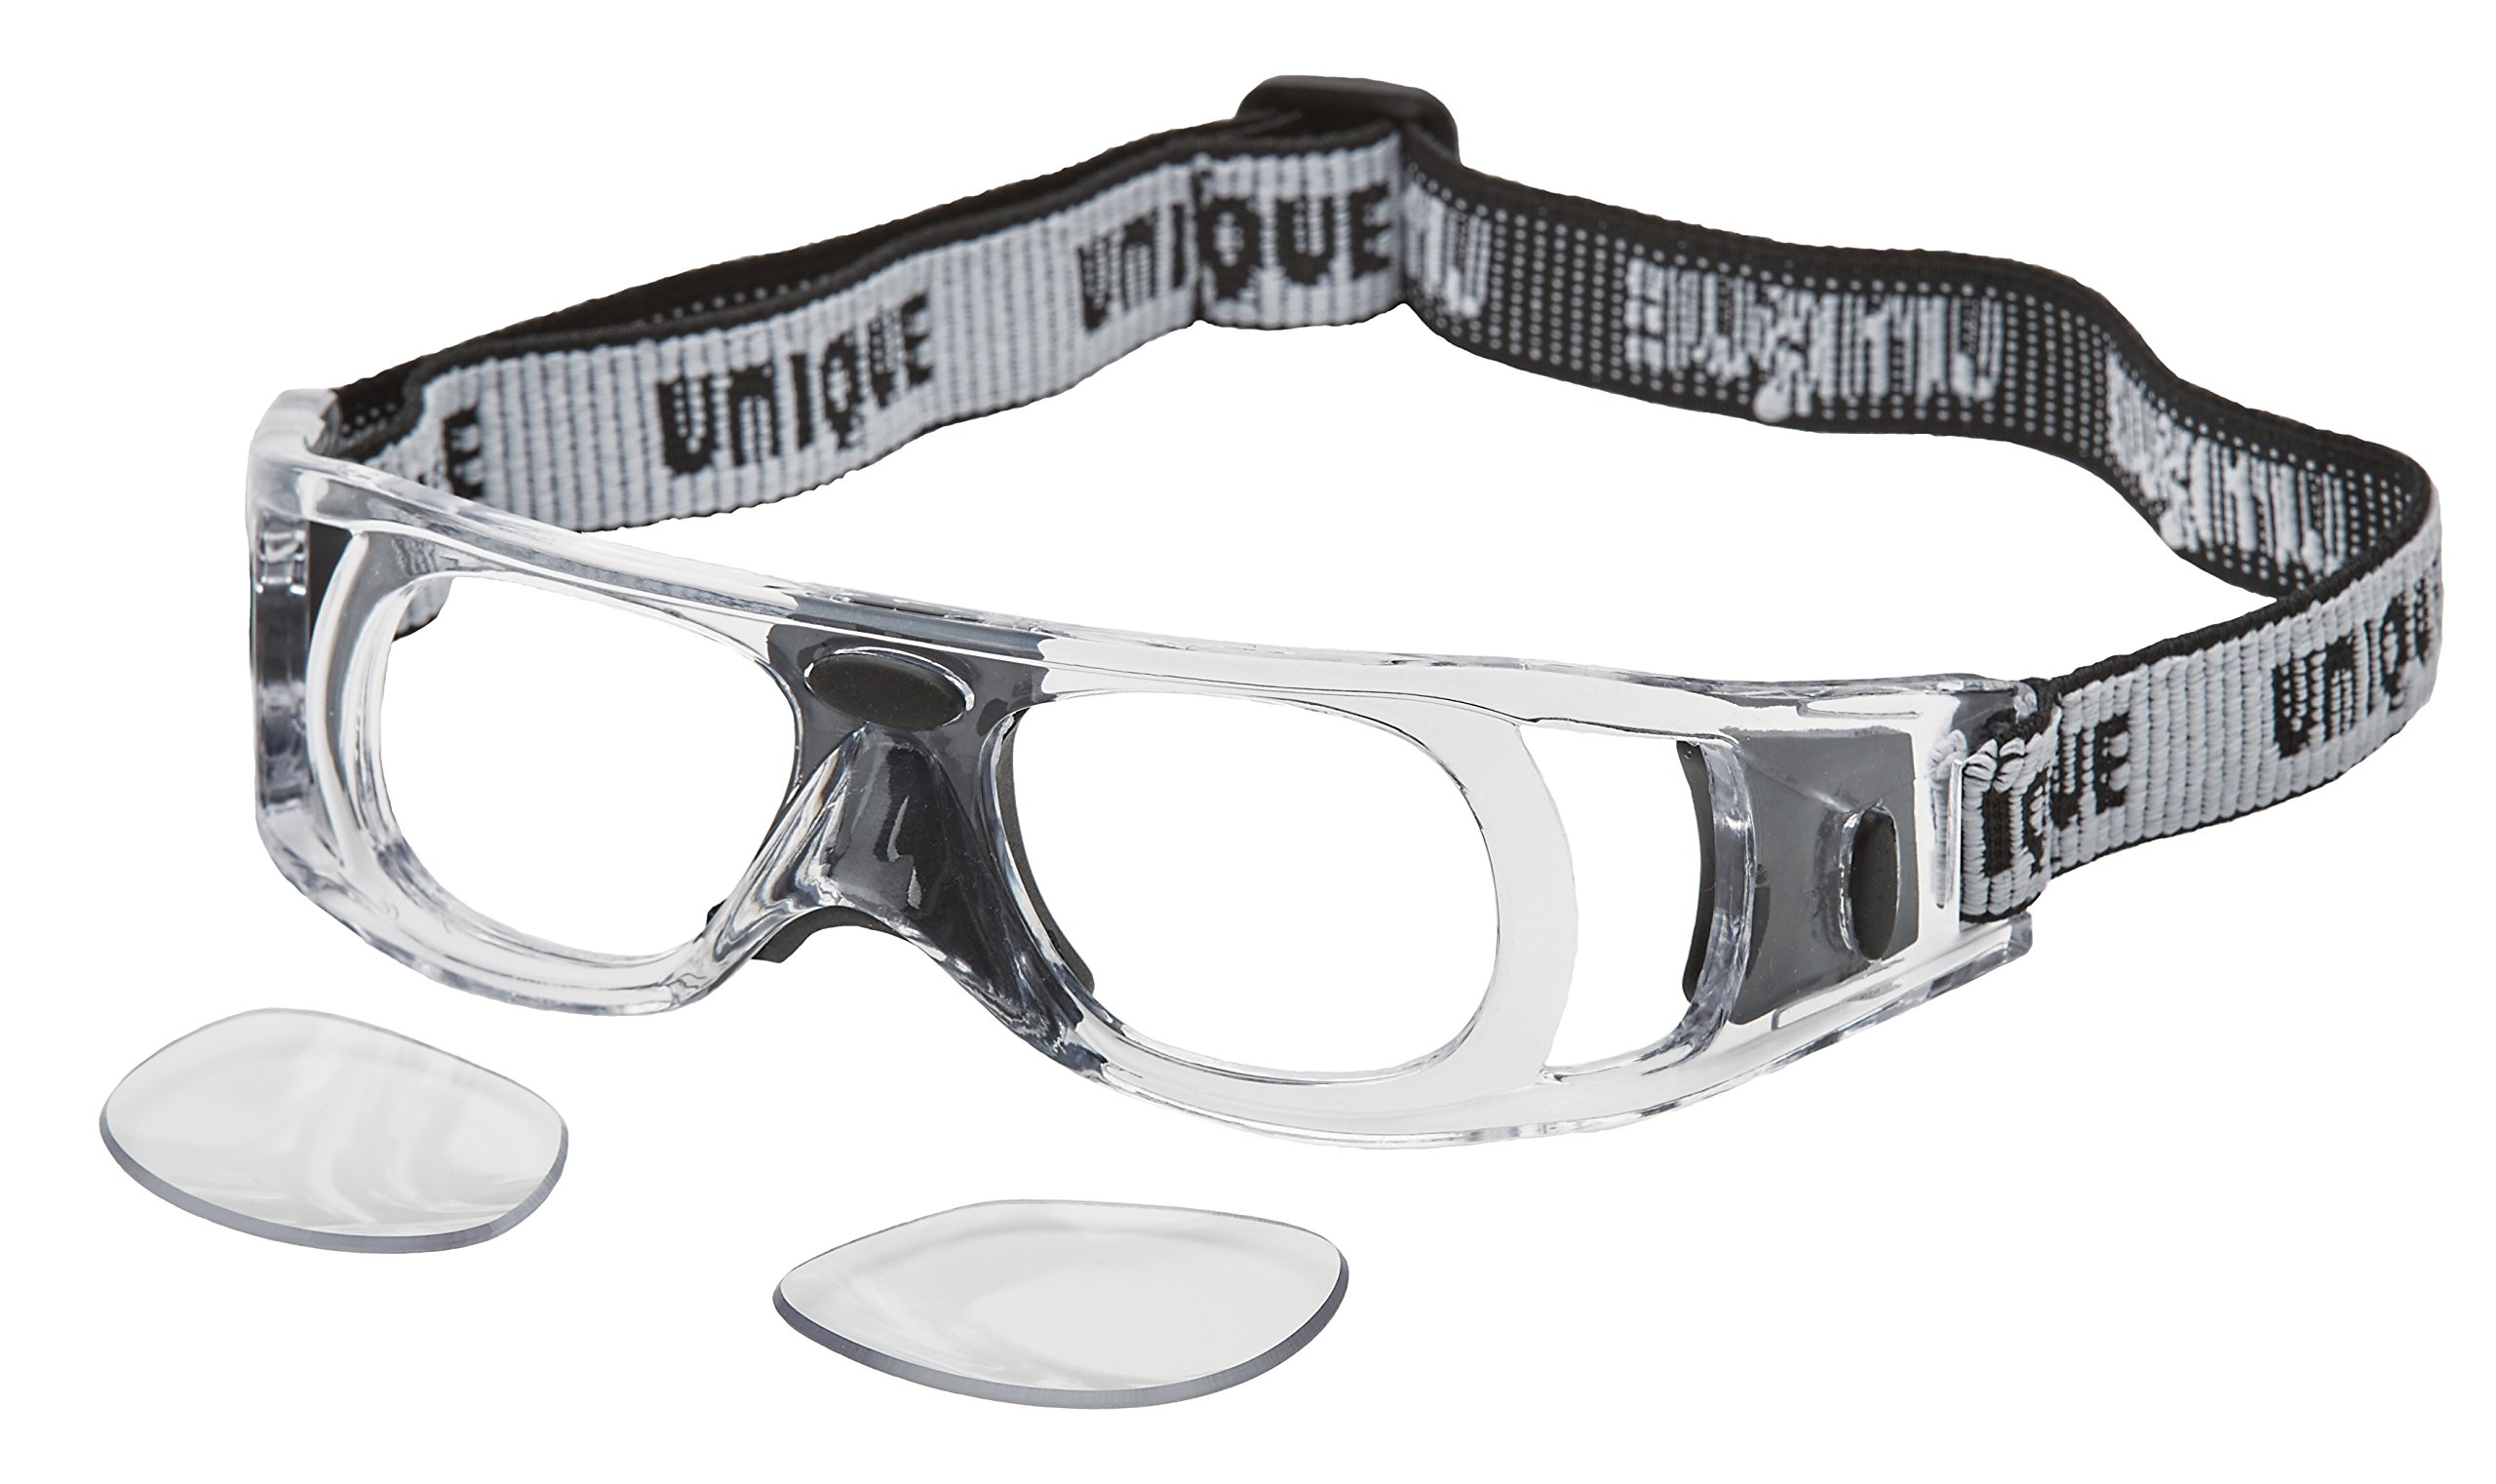 Unique Sports Youth RX Specs Eyeguards for Prescription Lenses